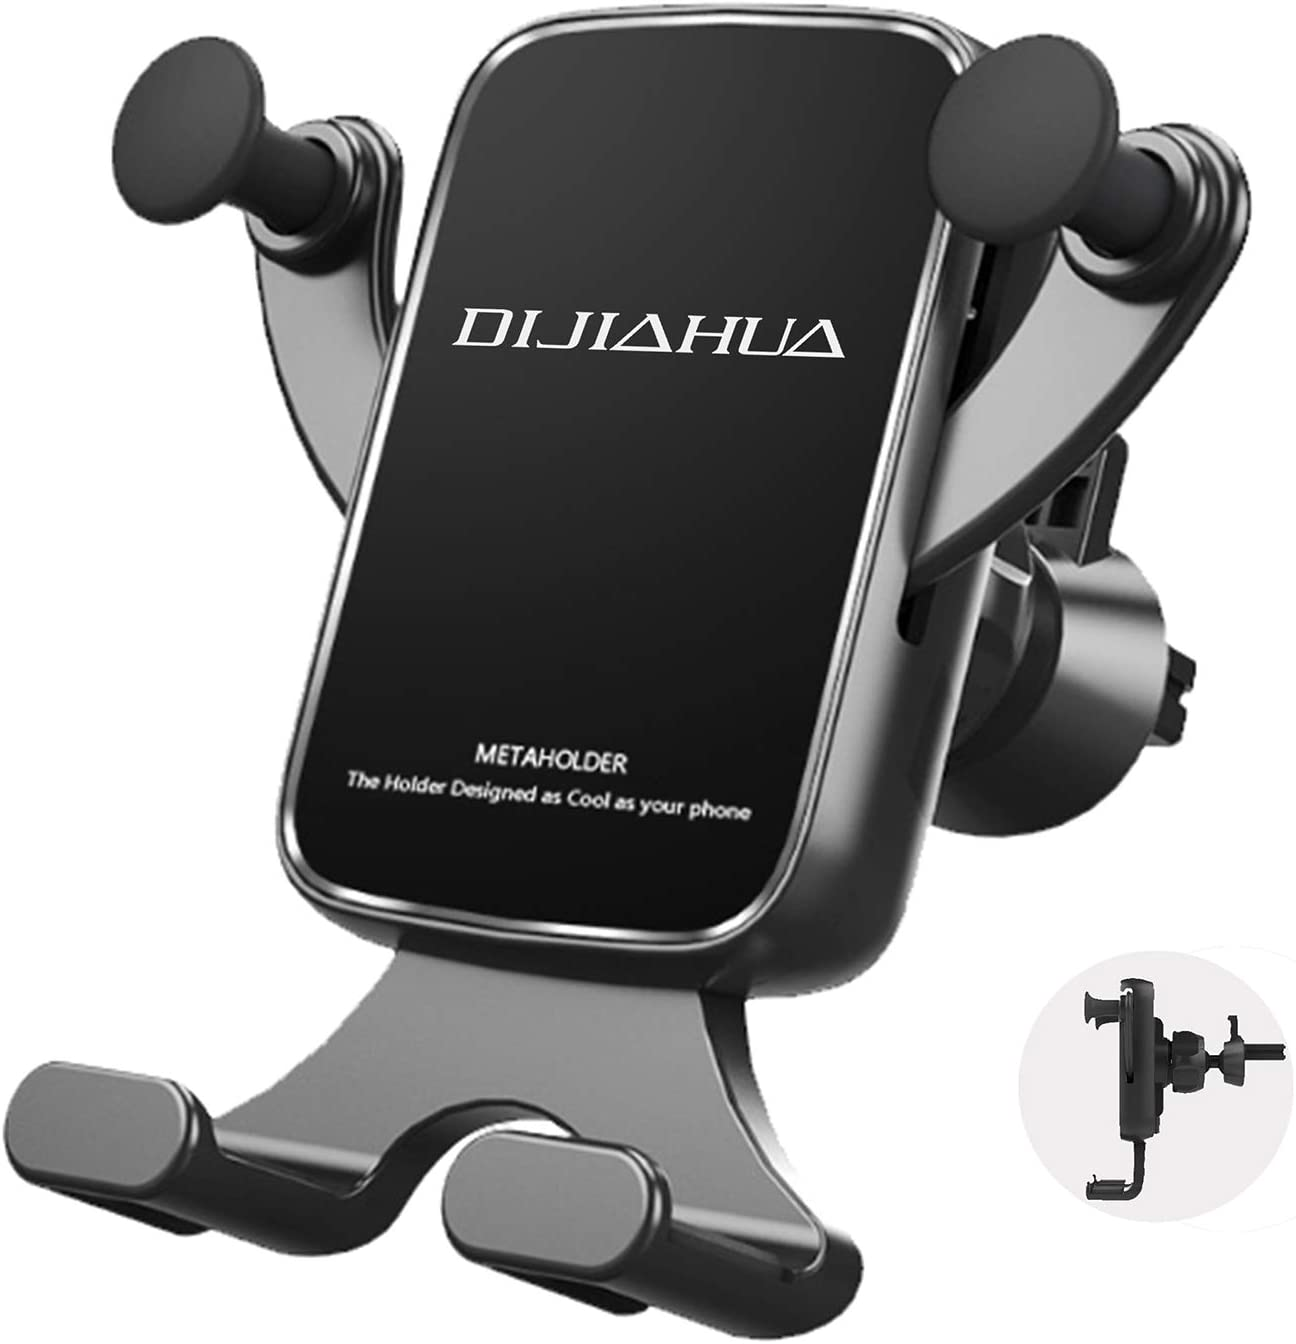 DIJIAHUA Car Phone Mount Holder Rotatable Air Vent Cell Phone Holder for Car Compatible With iPhone 11 Pro XR X 8 7 Galaxy S10 9 8 7 LG Goole ZET Moto and More Gravity Automatic Locking Phone Holder